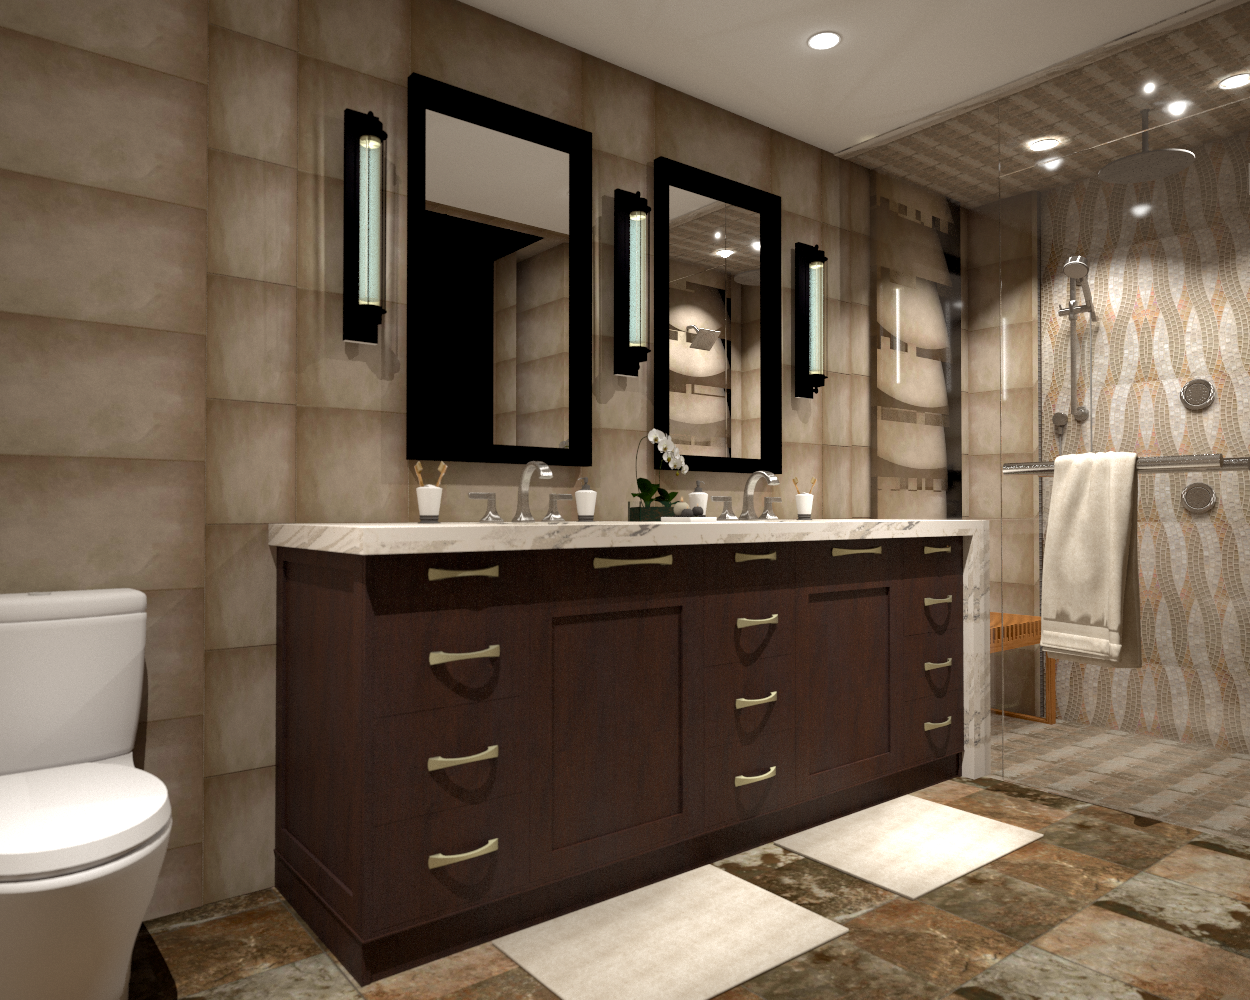 ART & CRAFT INSPIRED MASTER SUITE DESIGN PRESENTATION